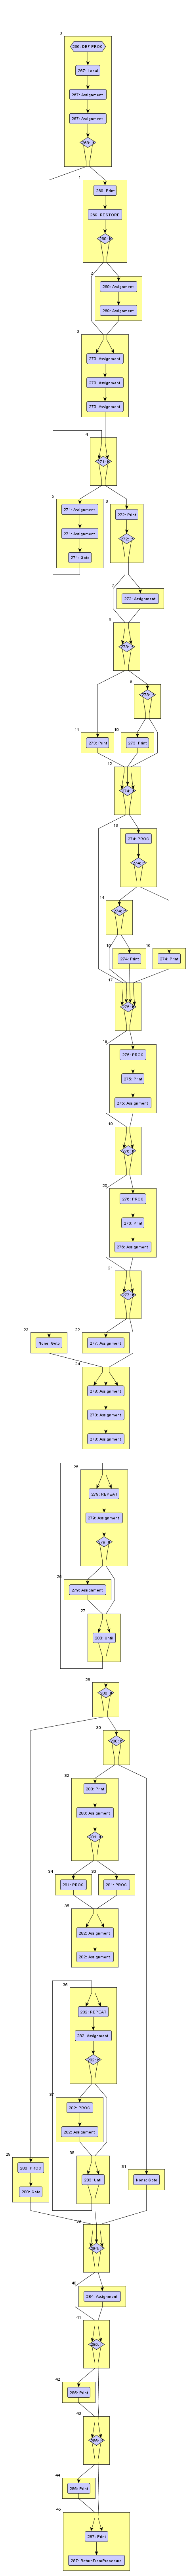 Control Flow Graph for PROC L in Sphinx Adventure